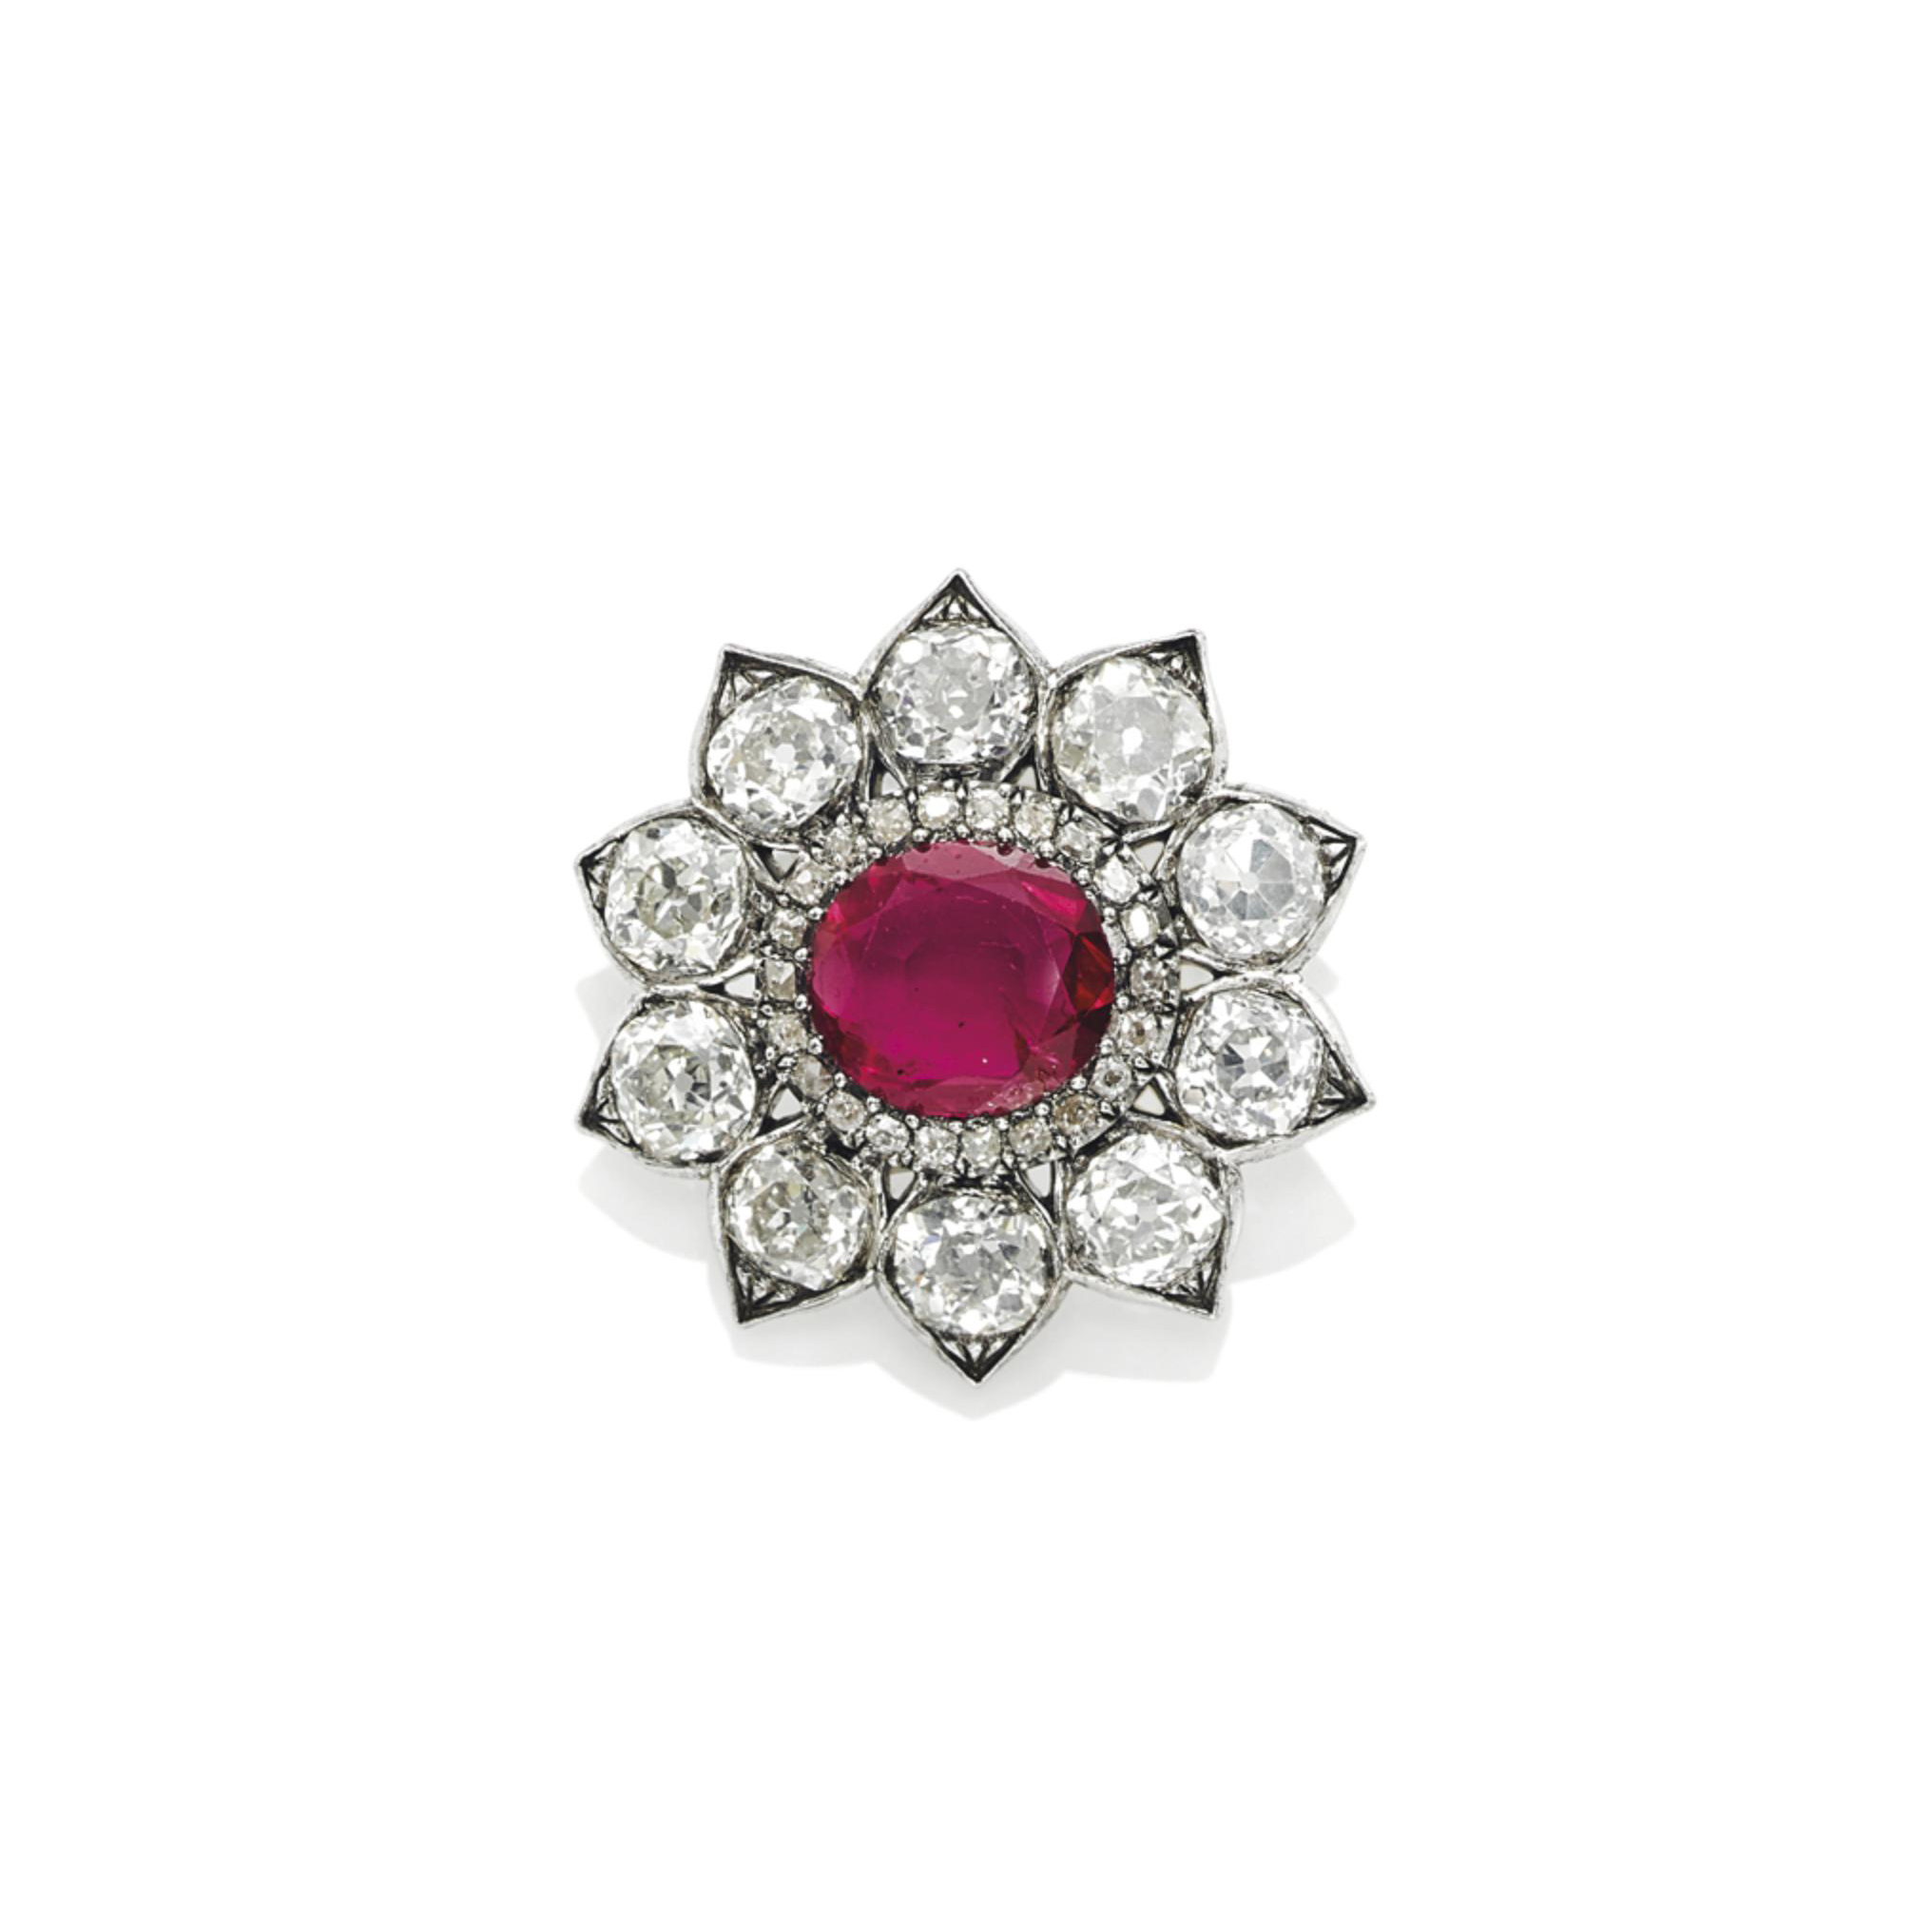 A MID 19TH CENTURY RUBY AND DIAMOND BROOCH/PENDANT